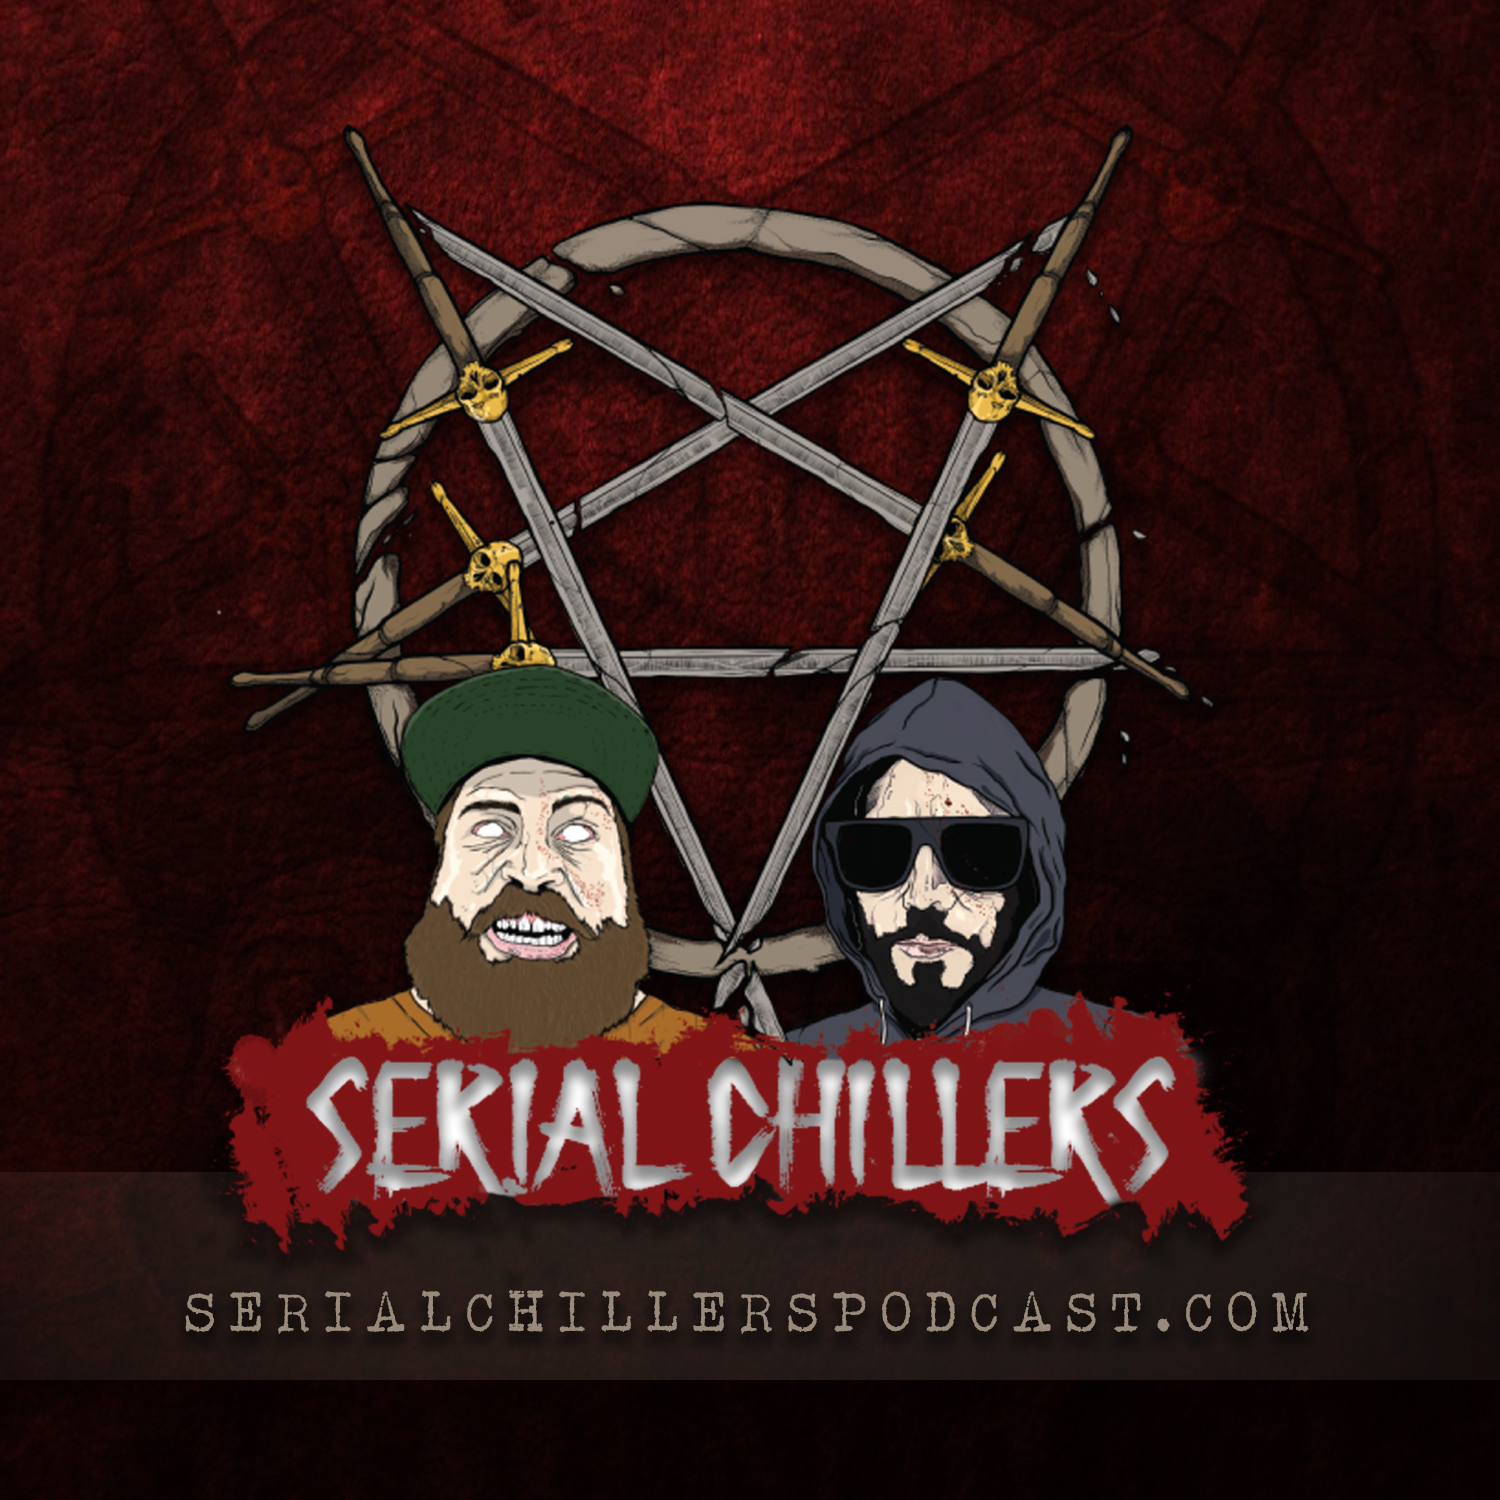 Serial Chillers Podcast show art